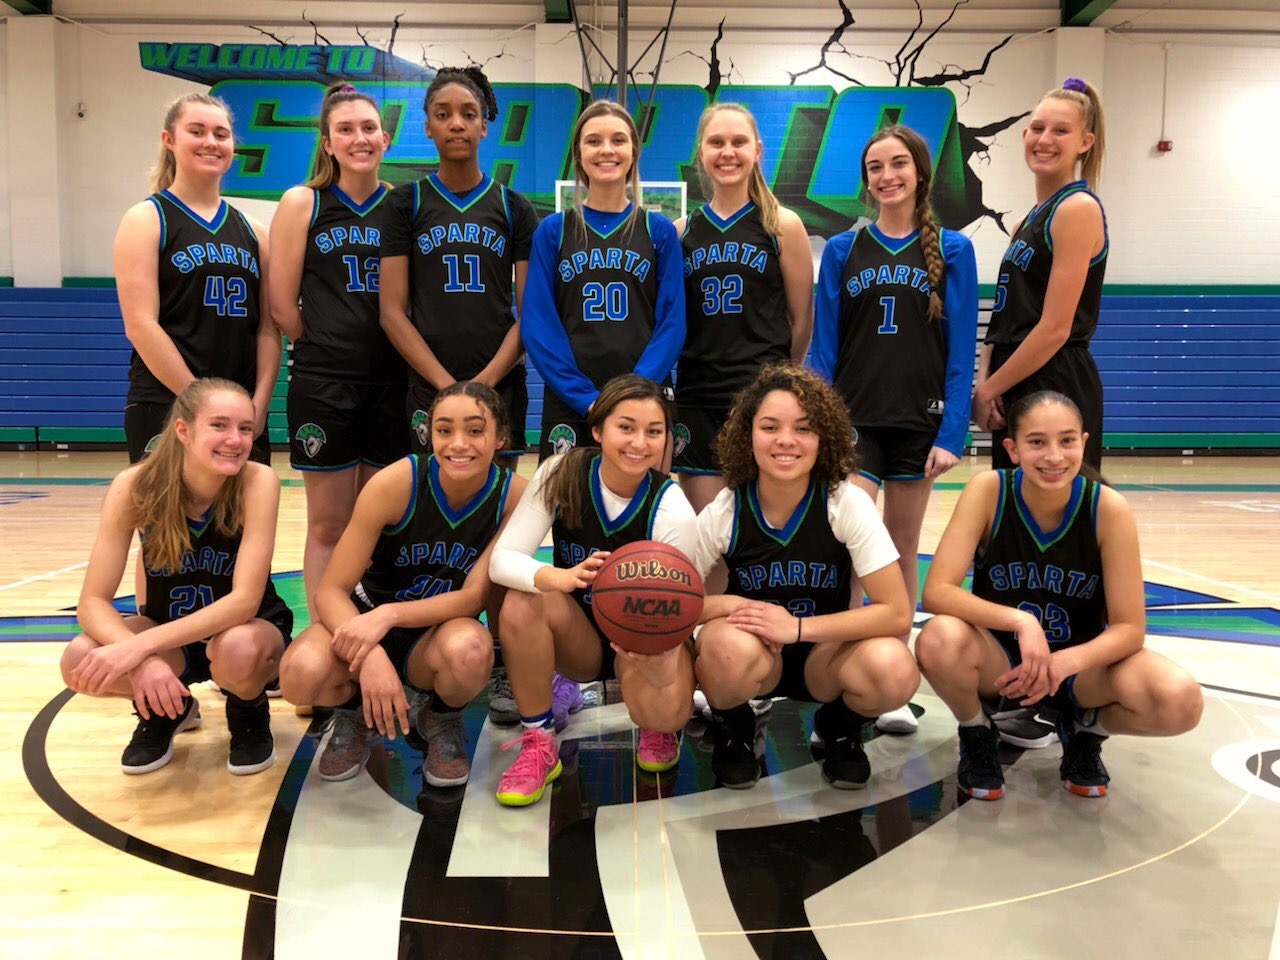 Girls Varsity Basketball poses for a photo